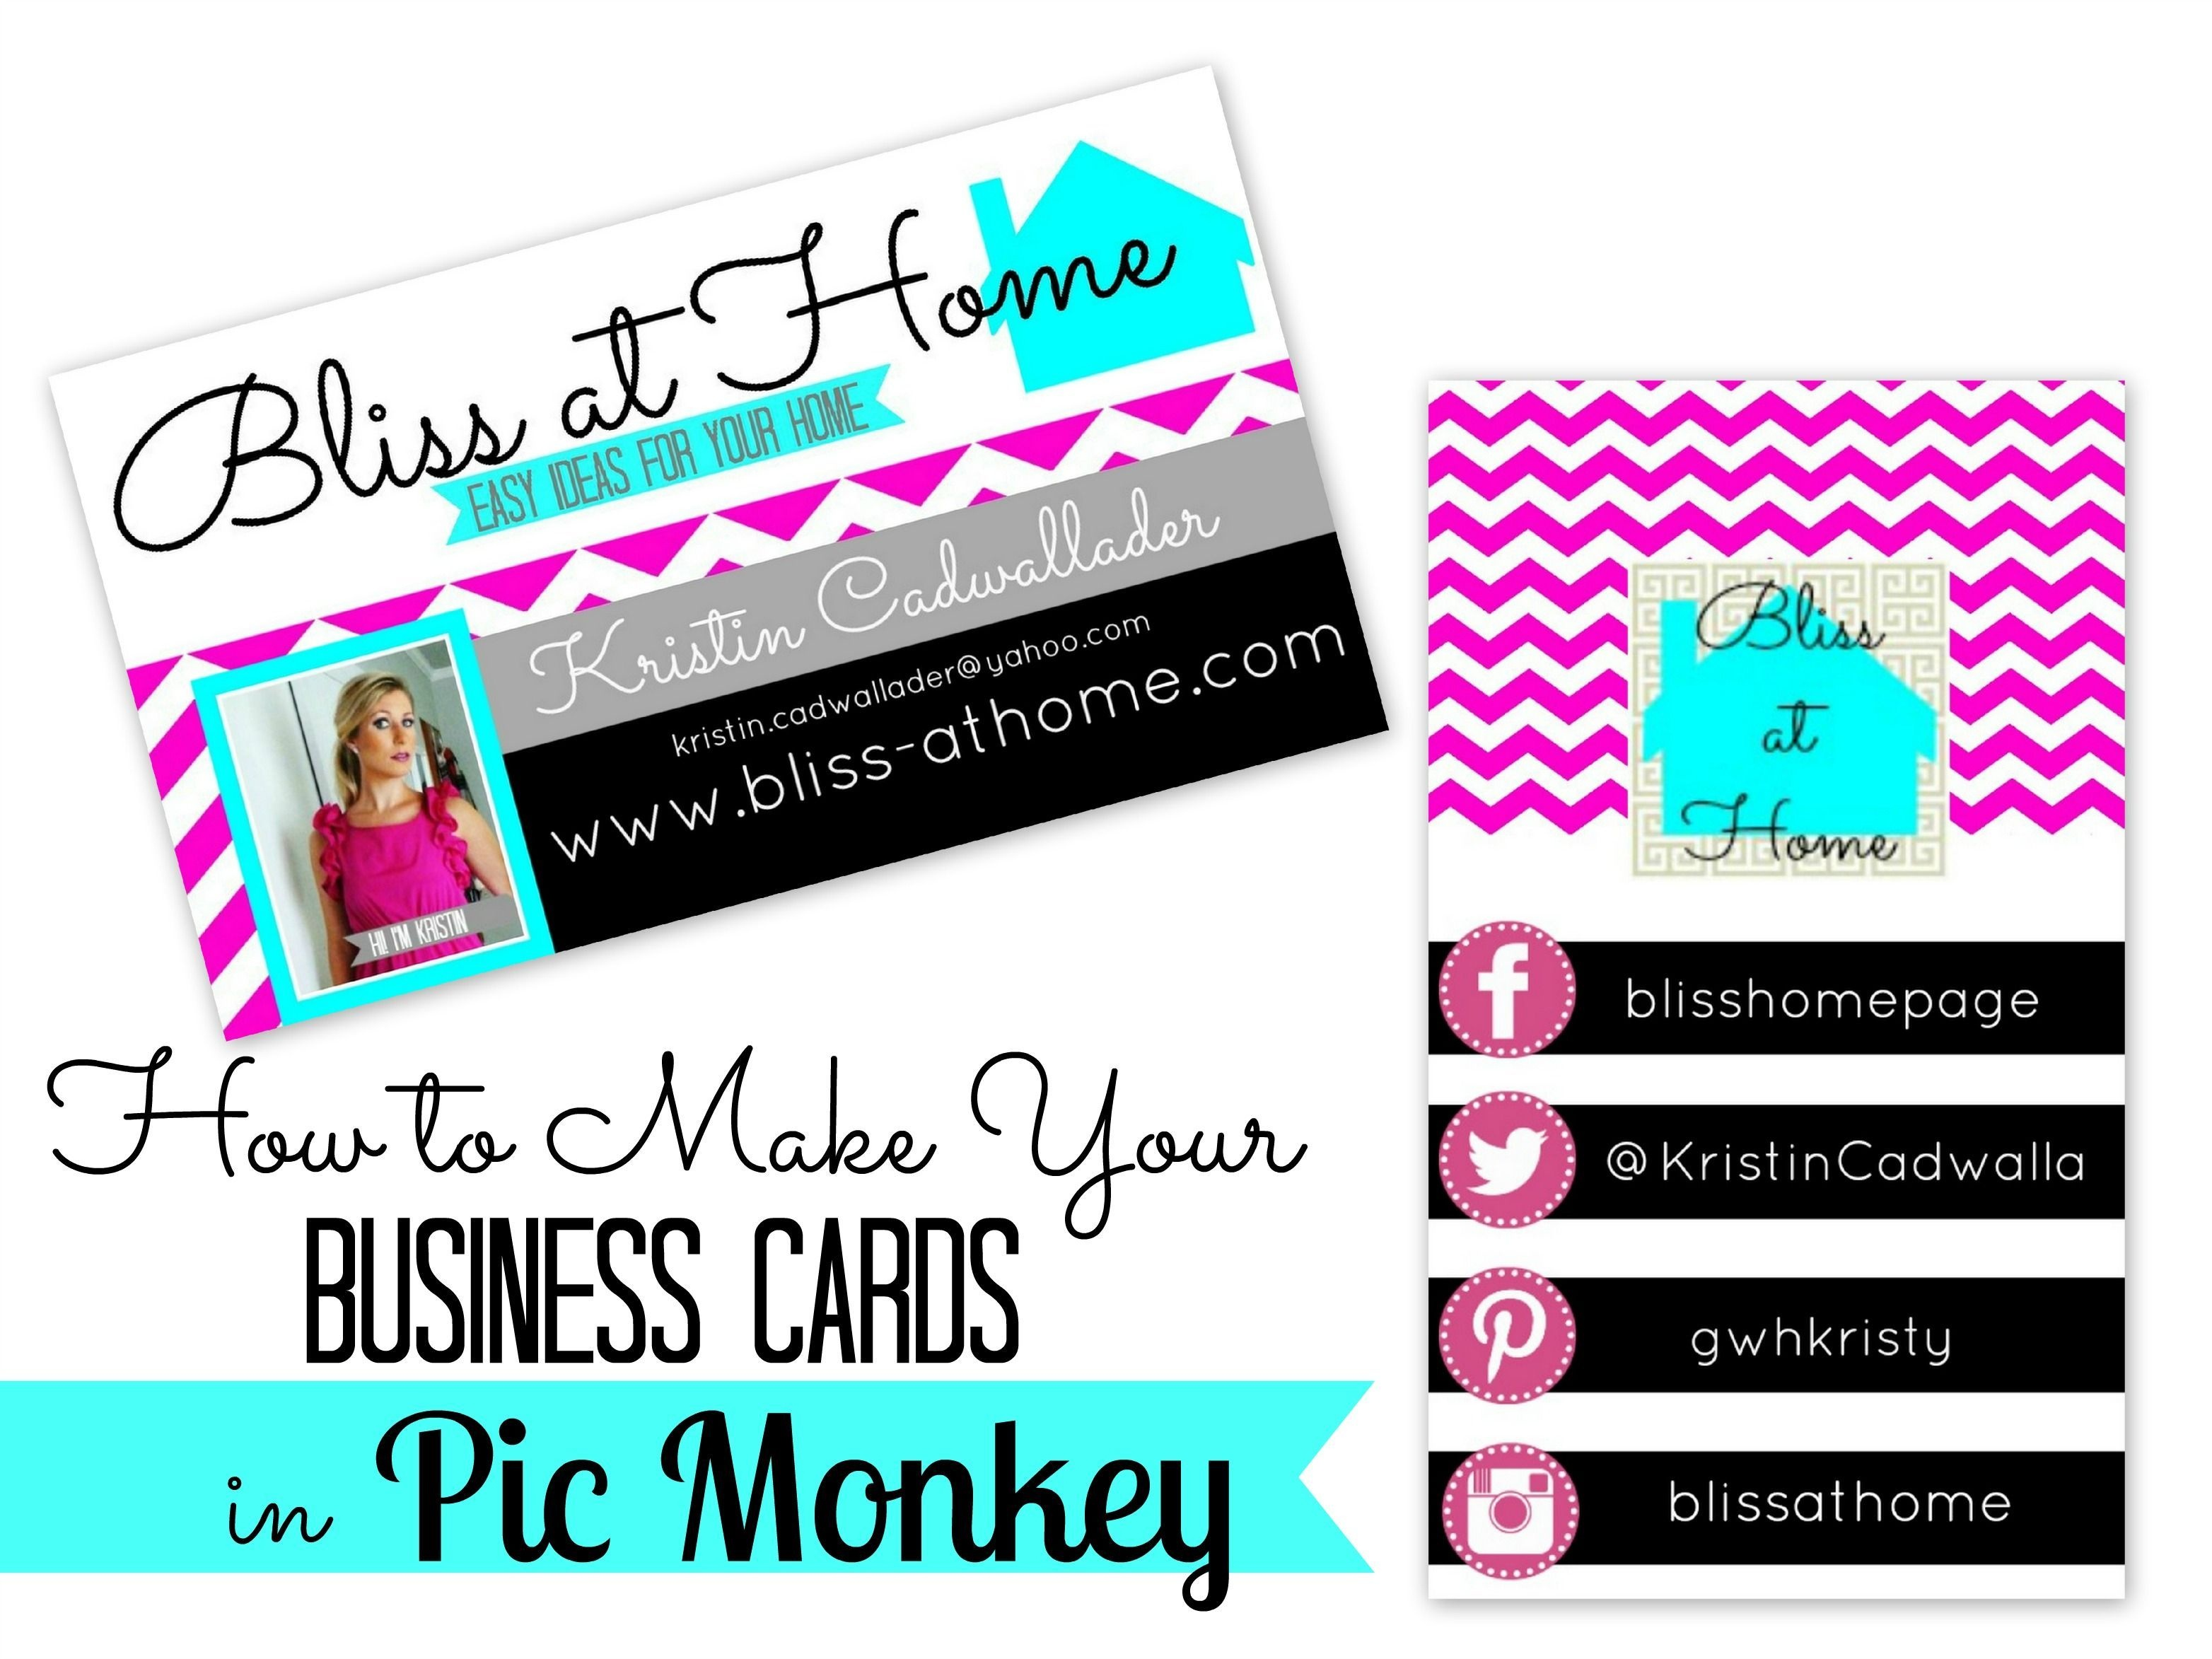 Design Your Make Your Own Business Cards Printable Online | Business - Make Your Own Card Online Free Printable